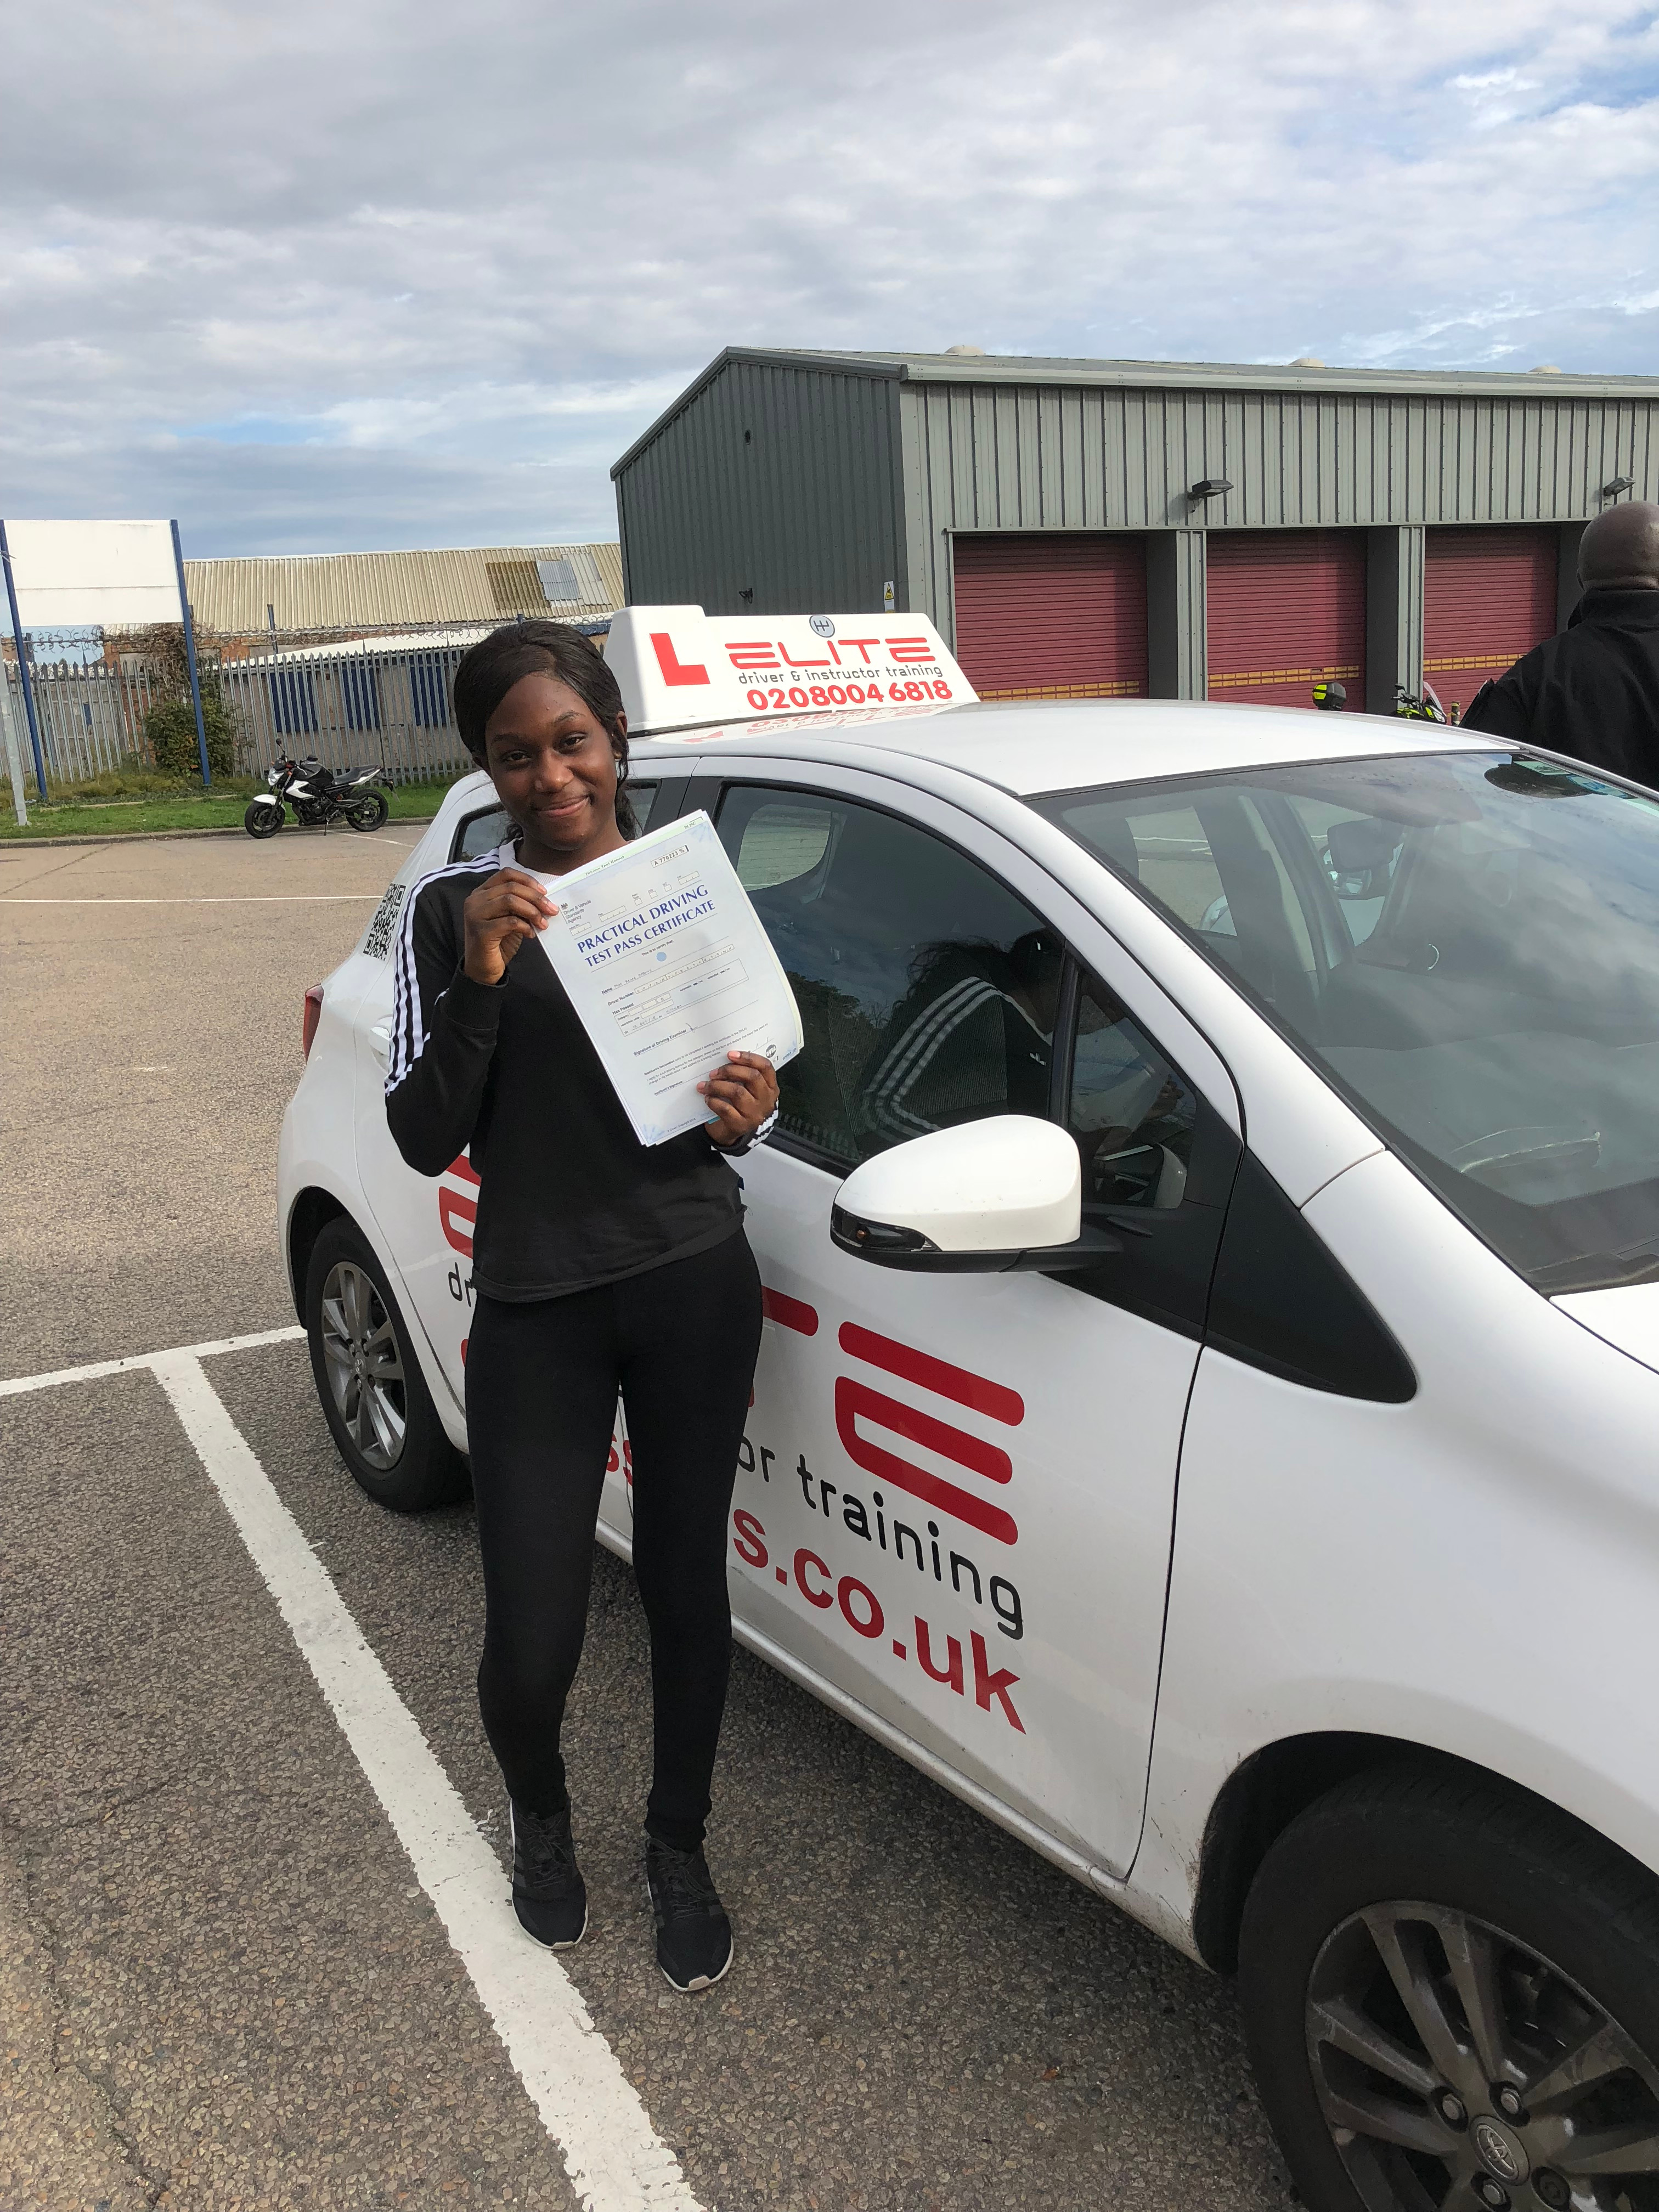 Another great pass for Garry last Friday with Reine at #MitchamTestCentre! #Congratulations!